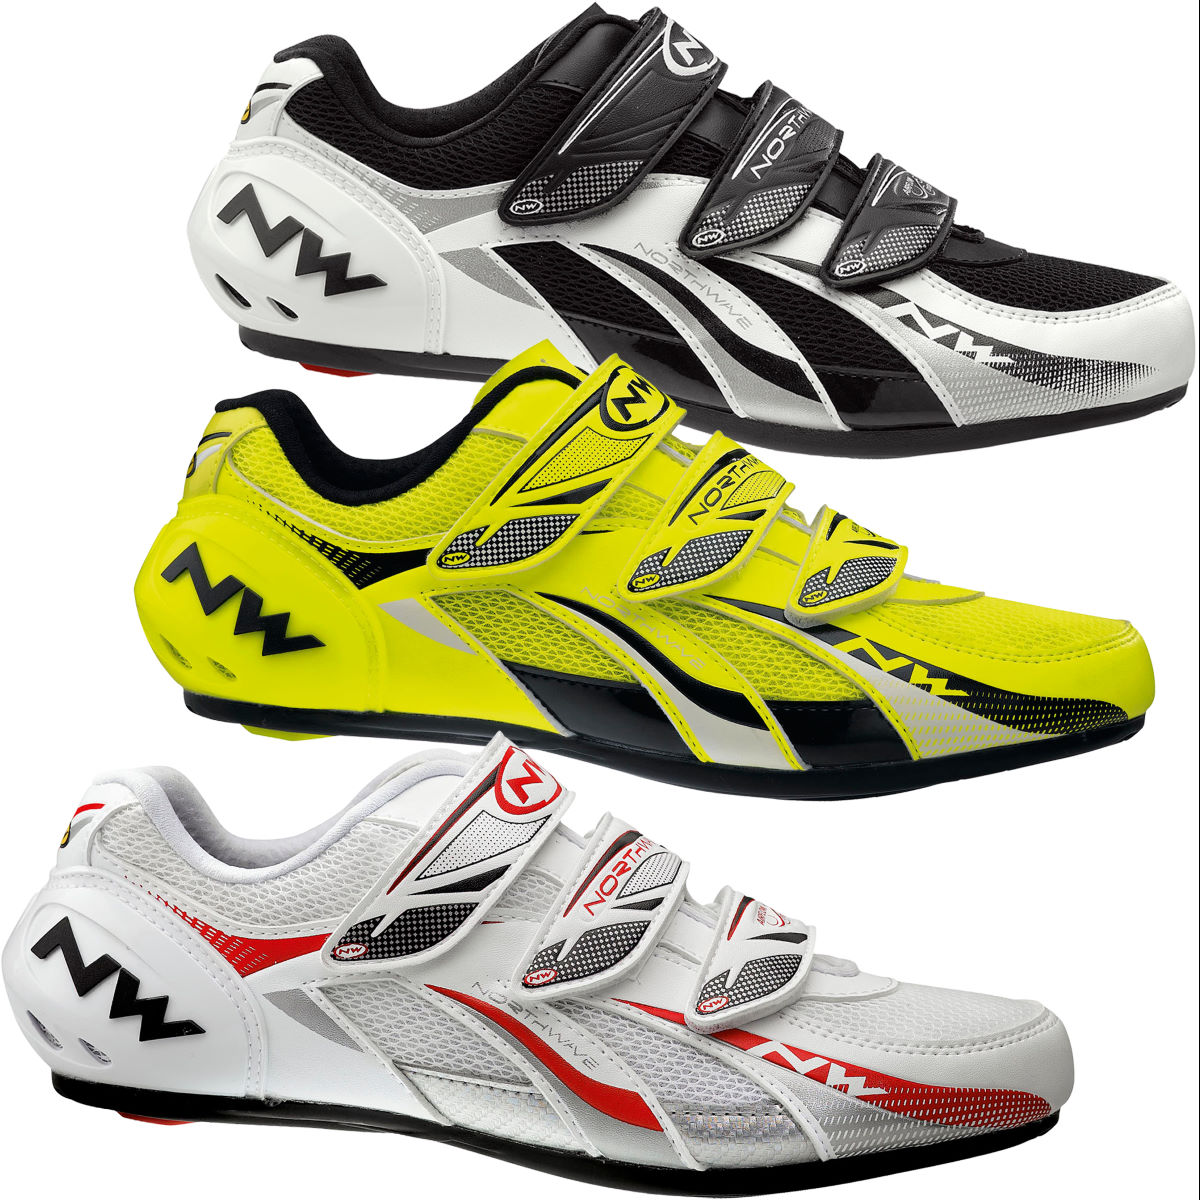 Northwave Fighter Road Shoes 2013